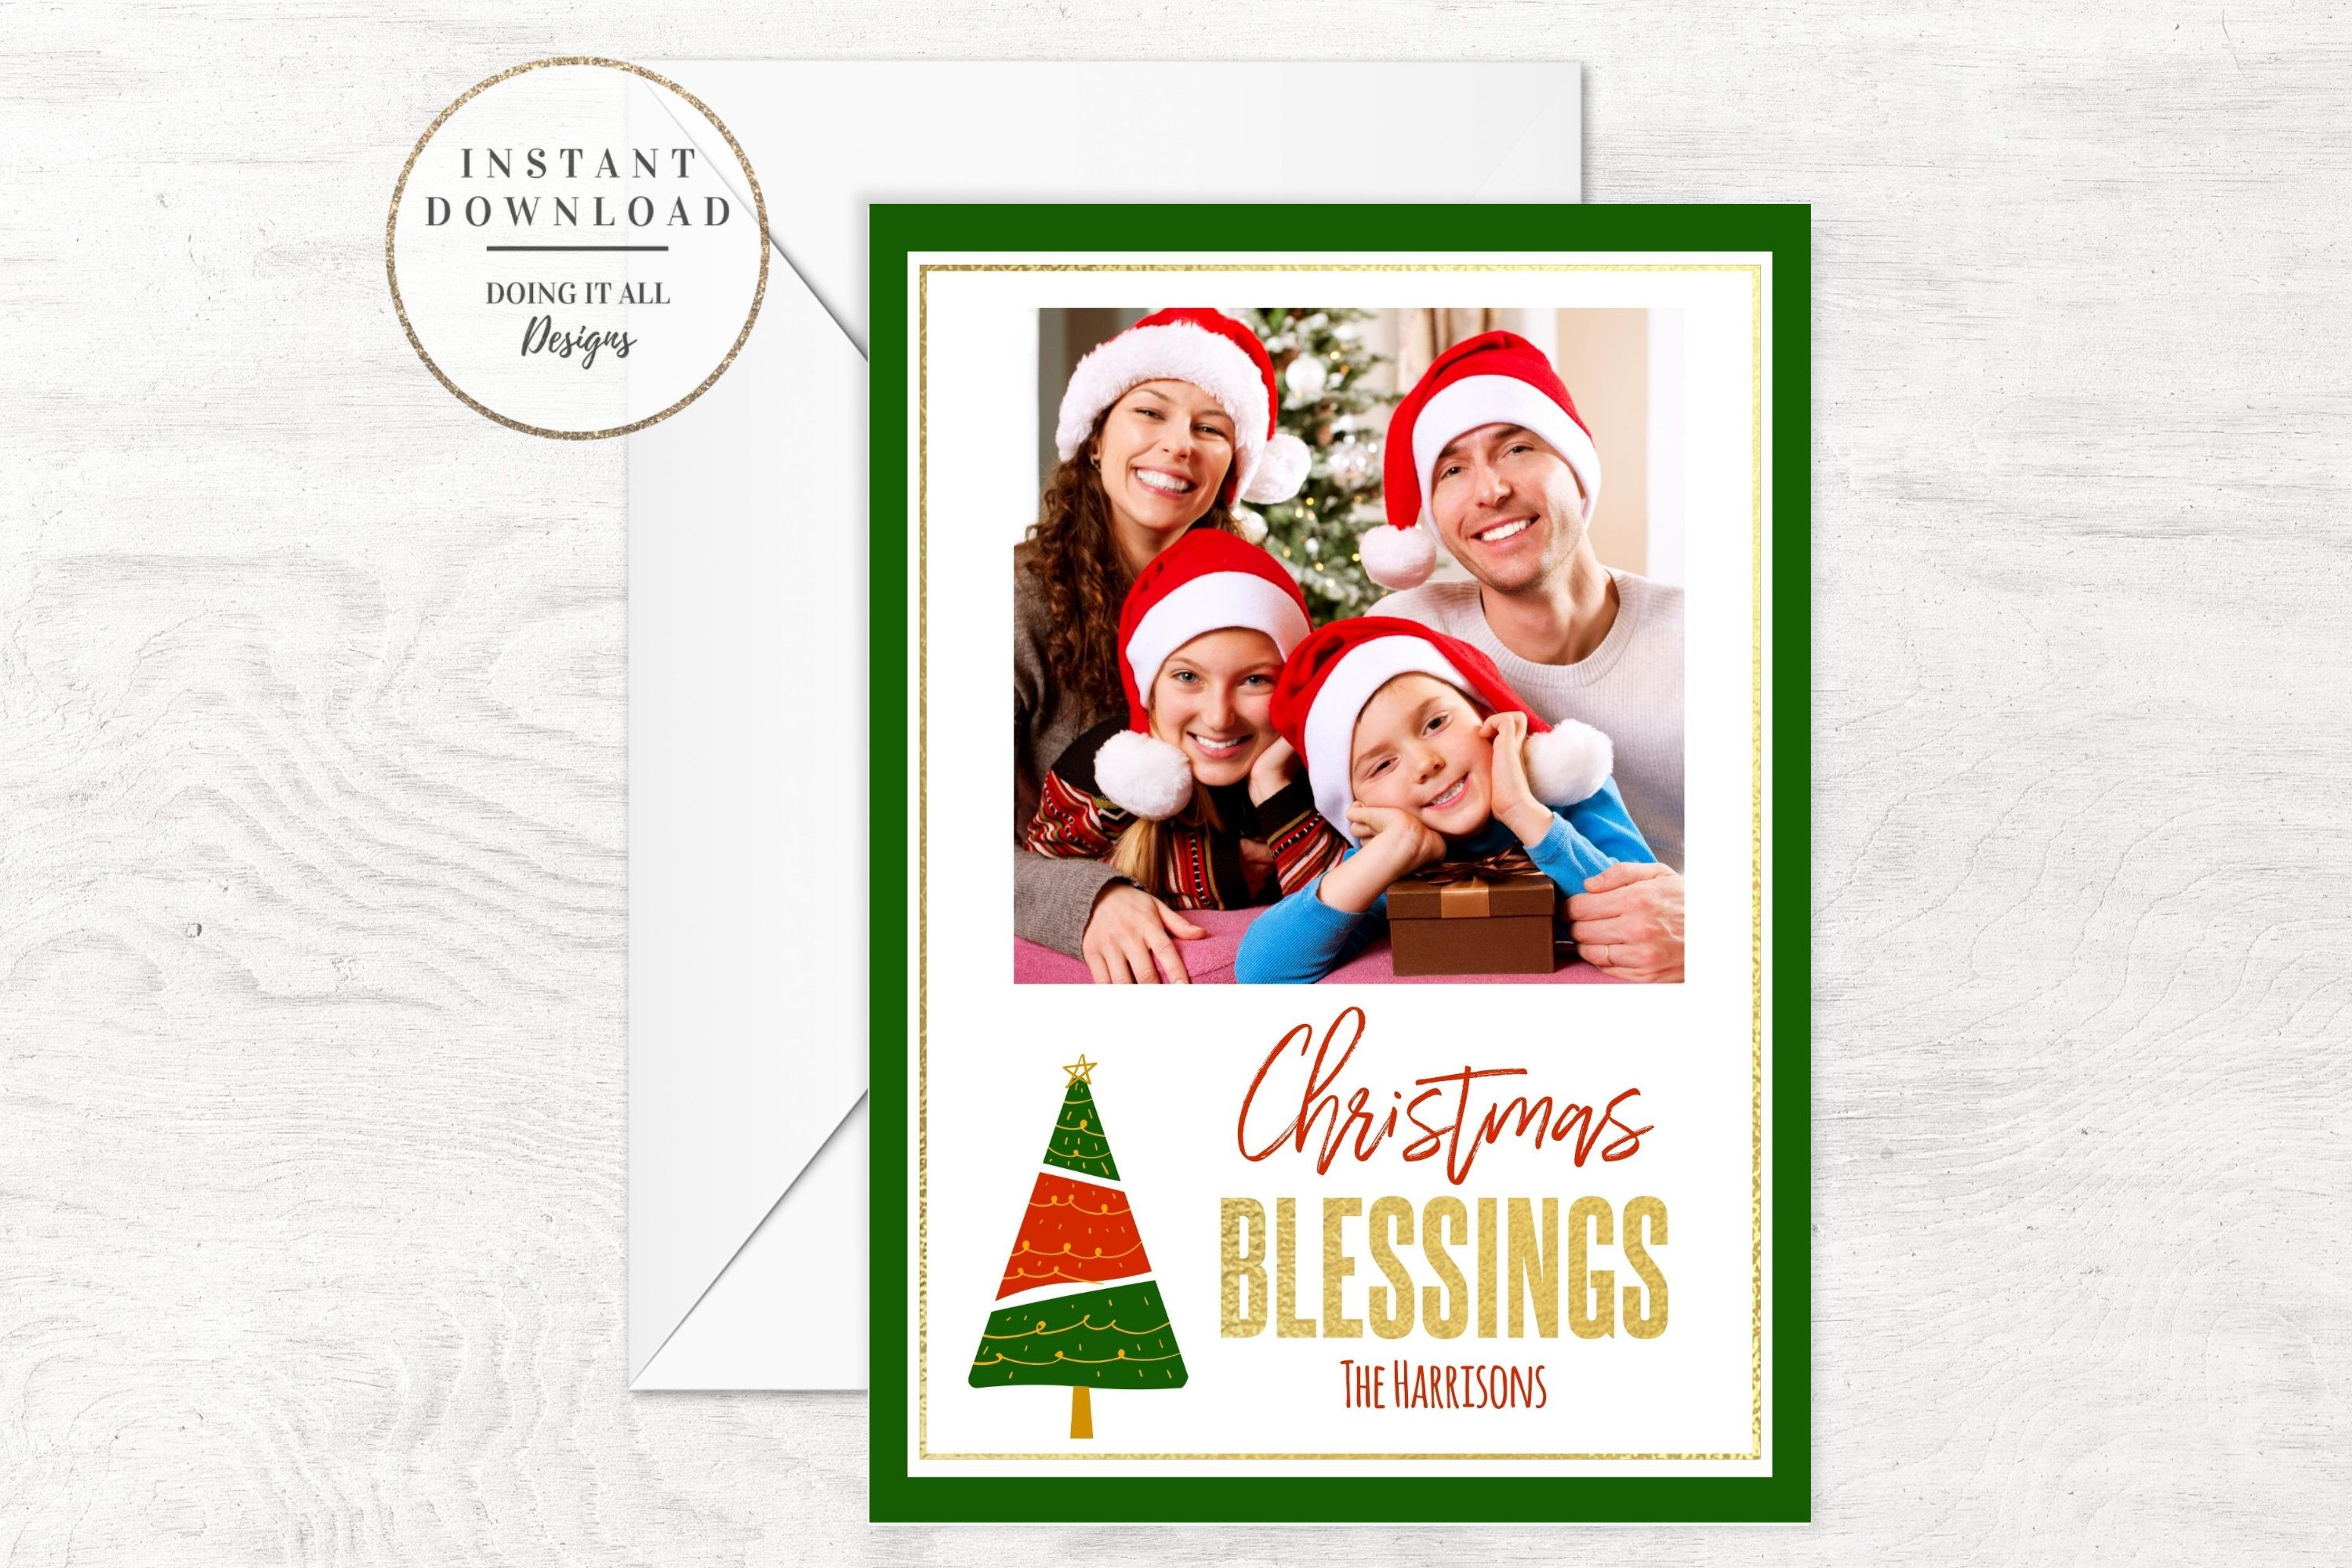 Editable Pdf Christmas Card Template Abstract Watercolor Christmas Tree Pattern Christmas Card Template Watercolor Christmas Tree Christmas Watercolor